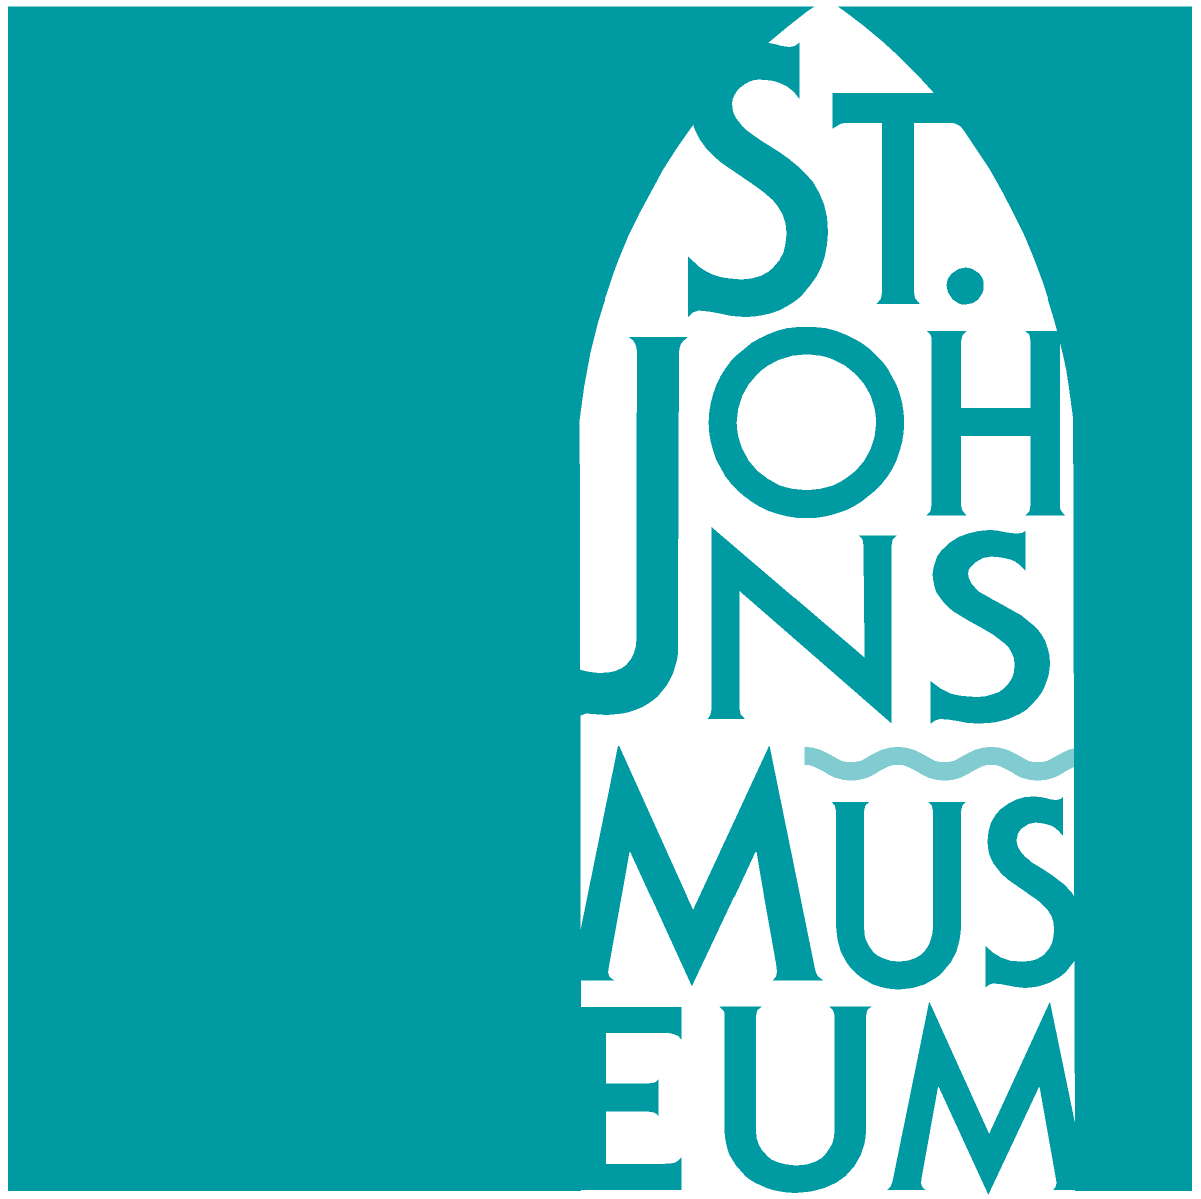 St. Johns Museum